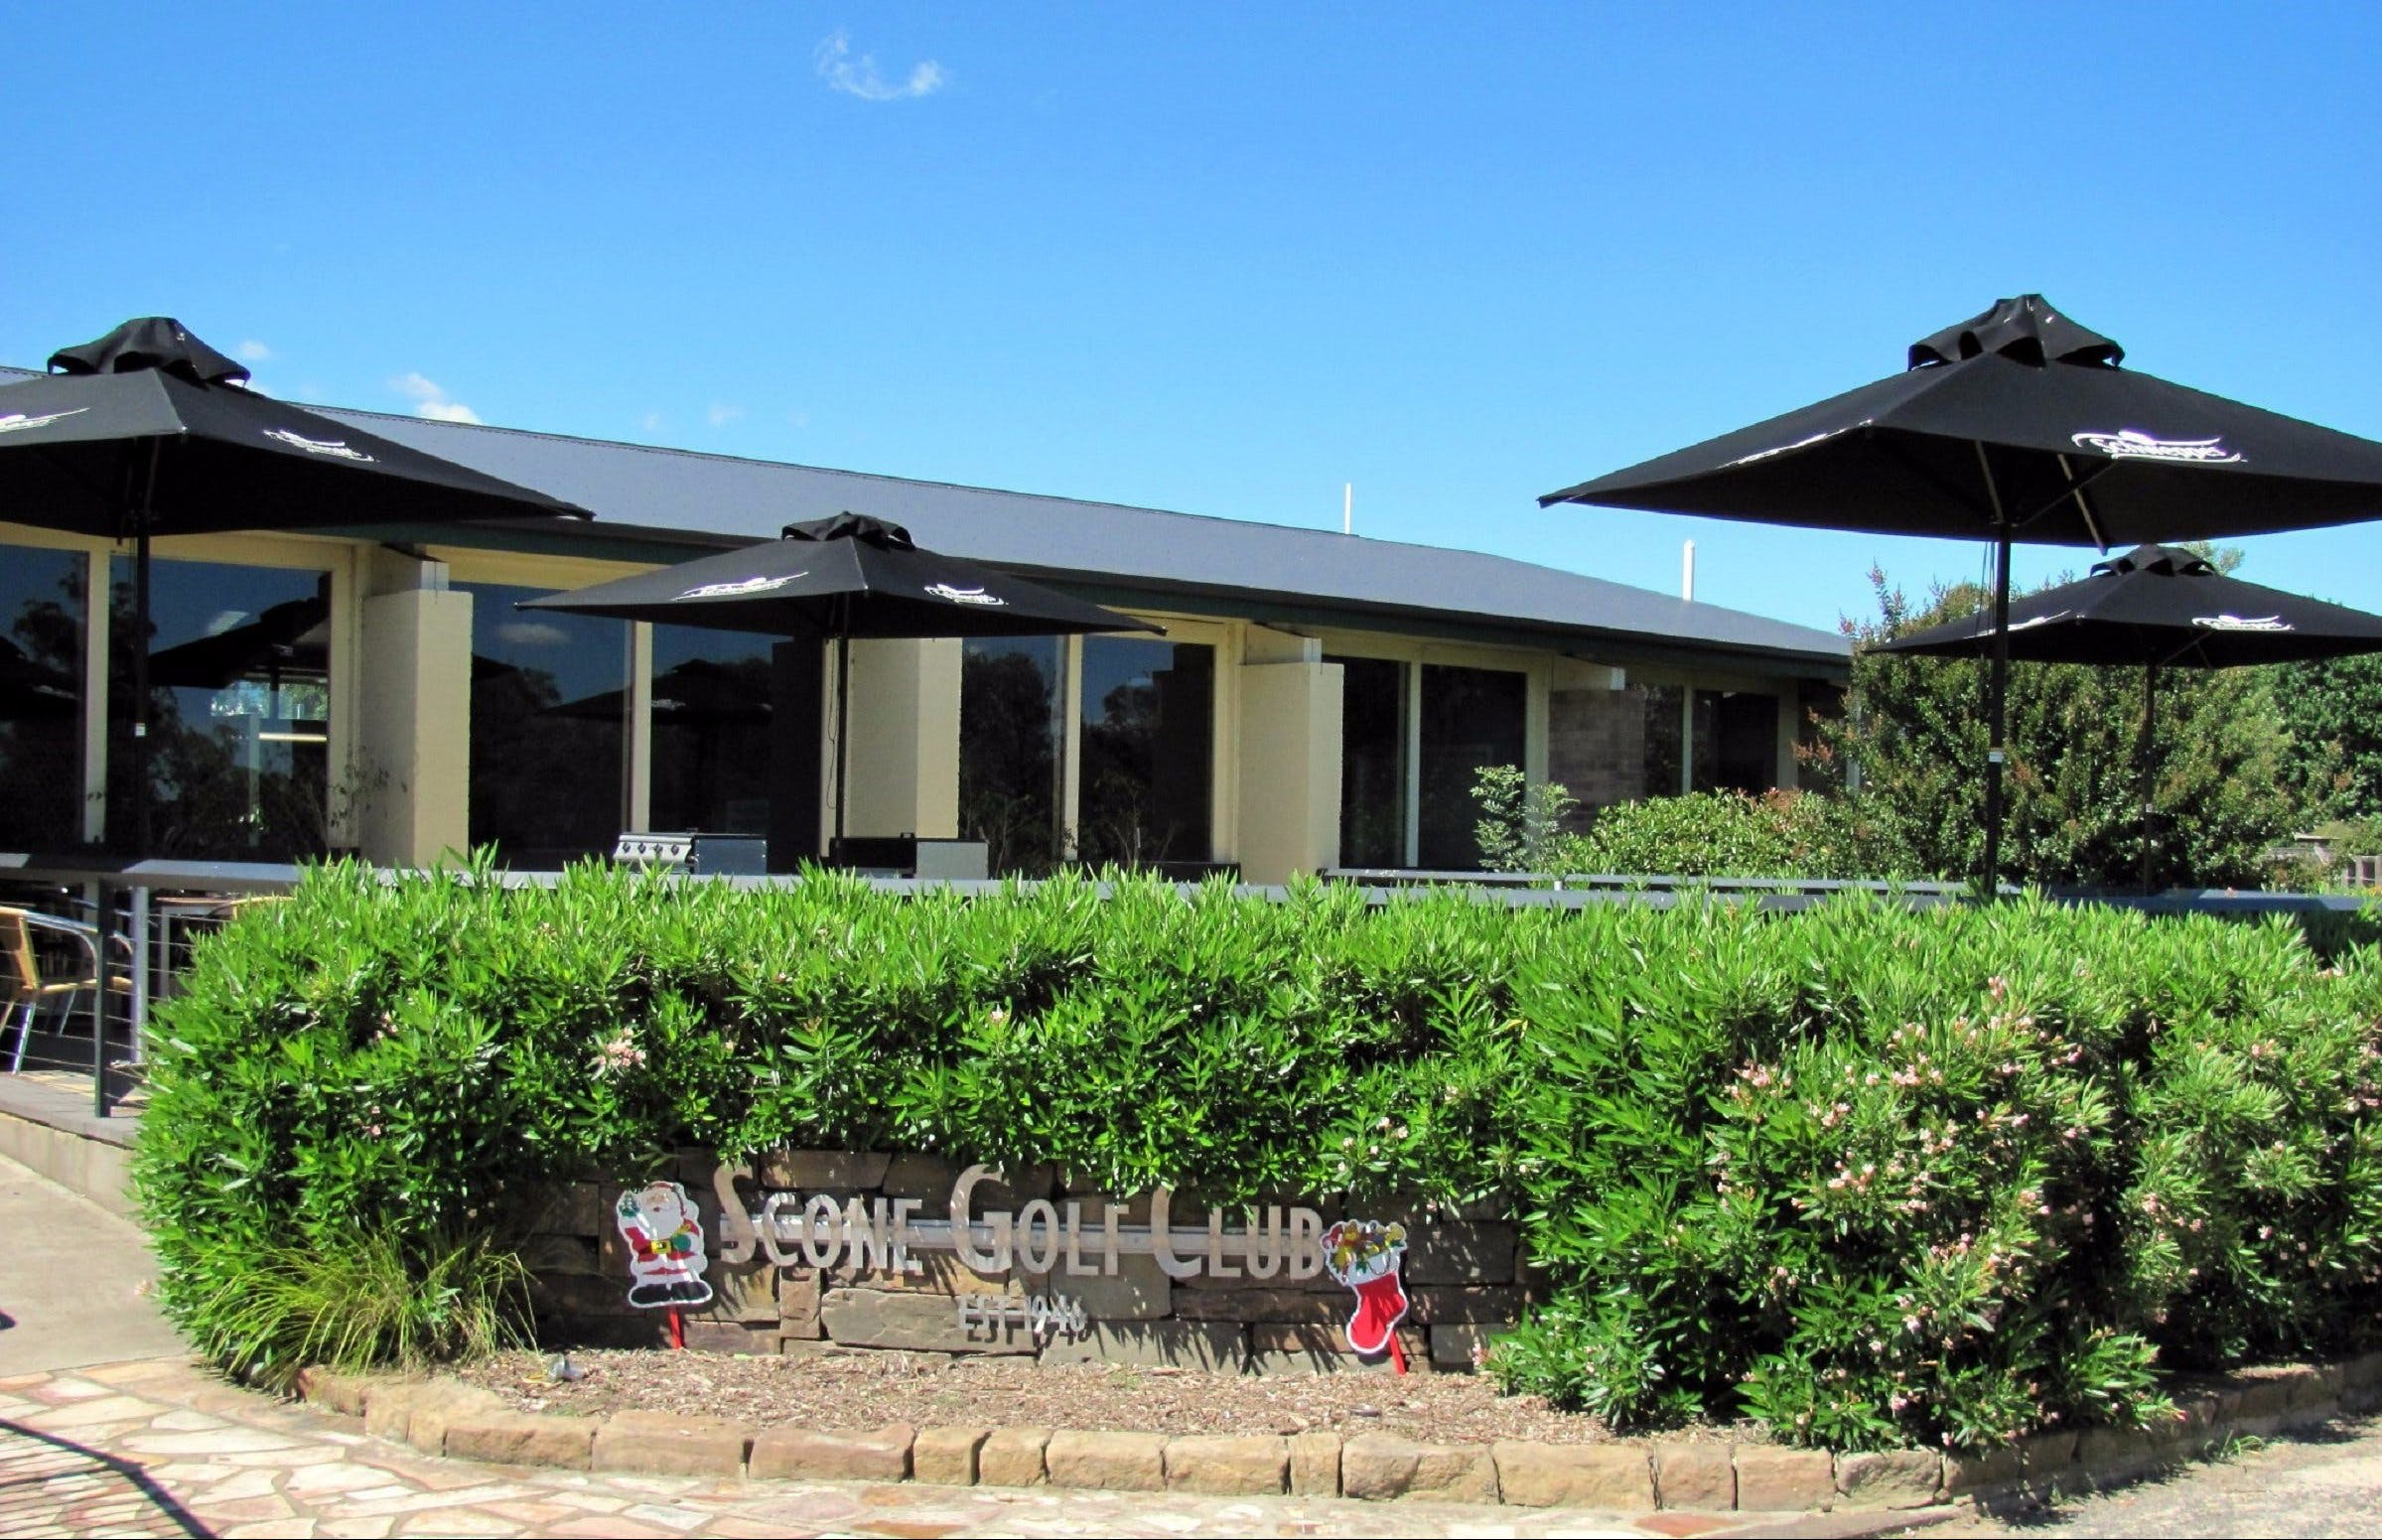 Scone Golf Club - Accommodation Redcliffe